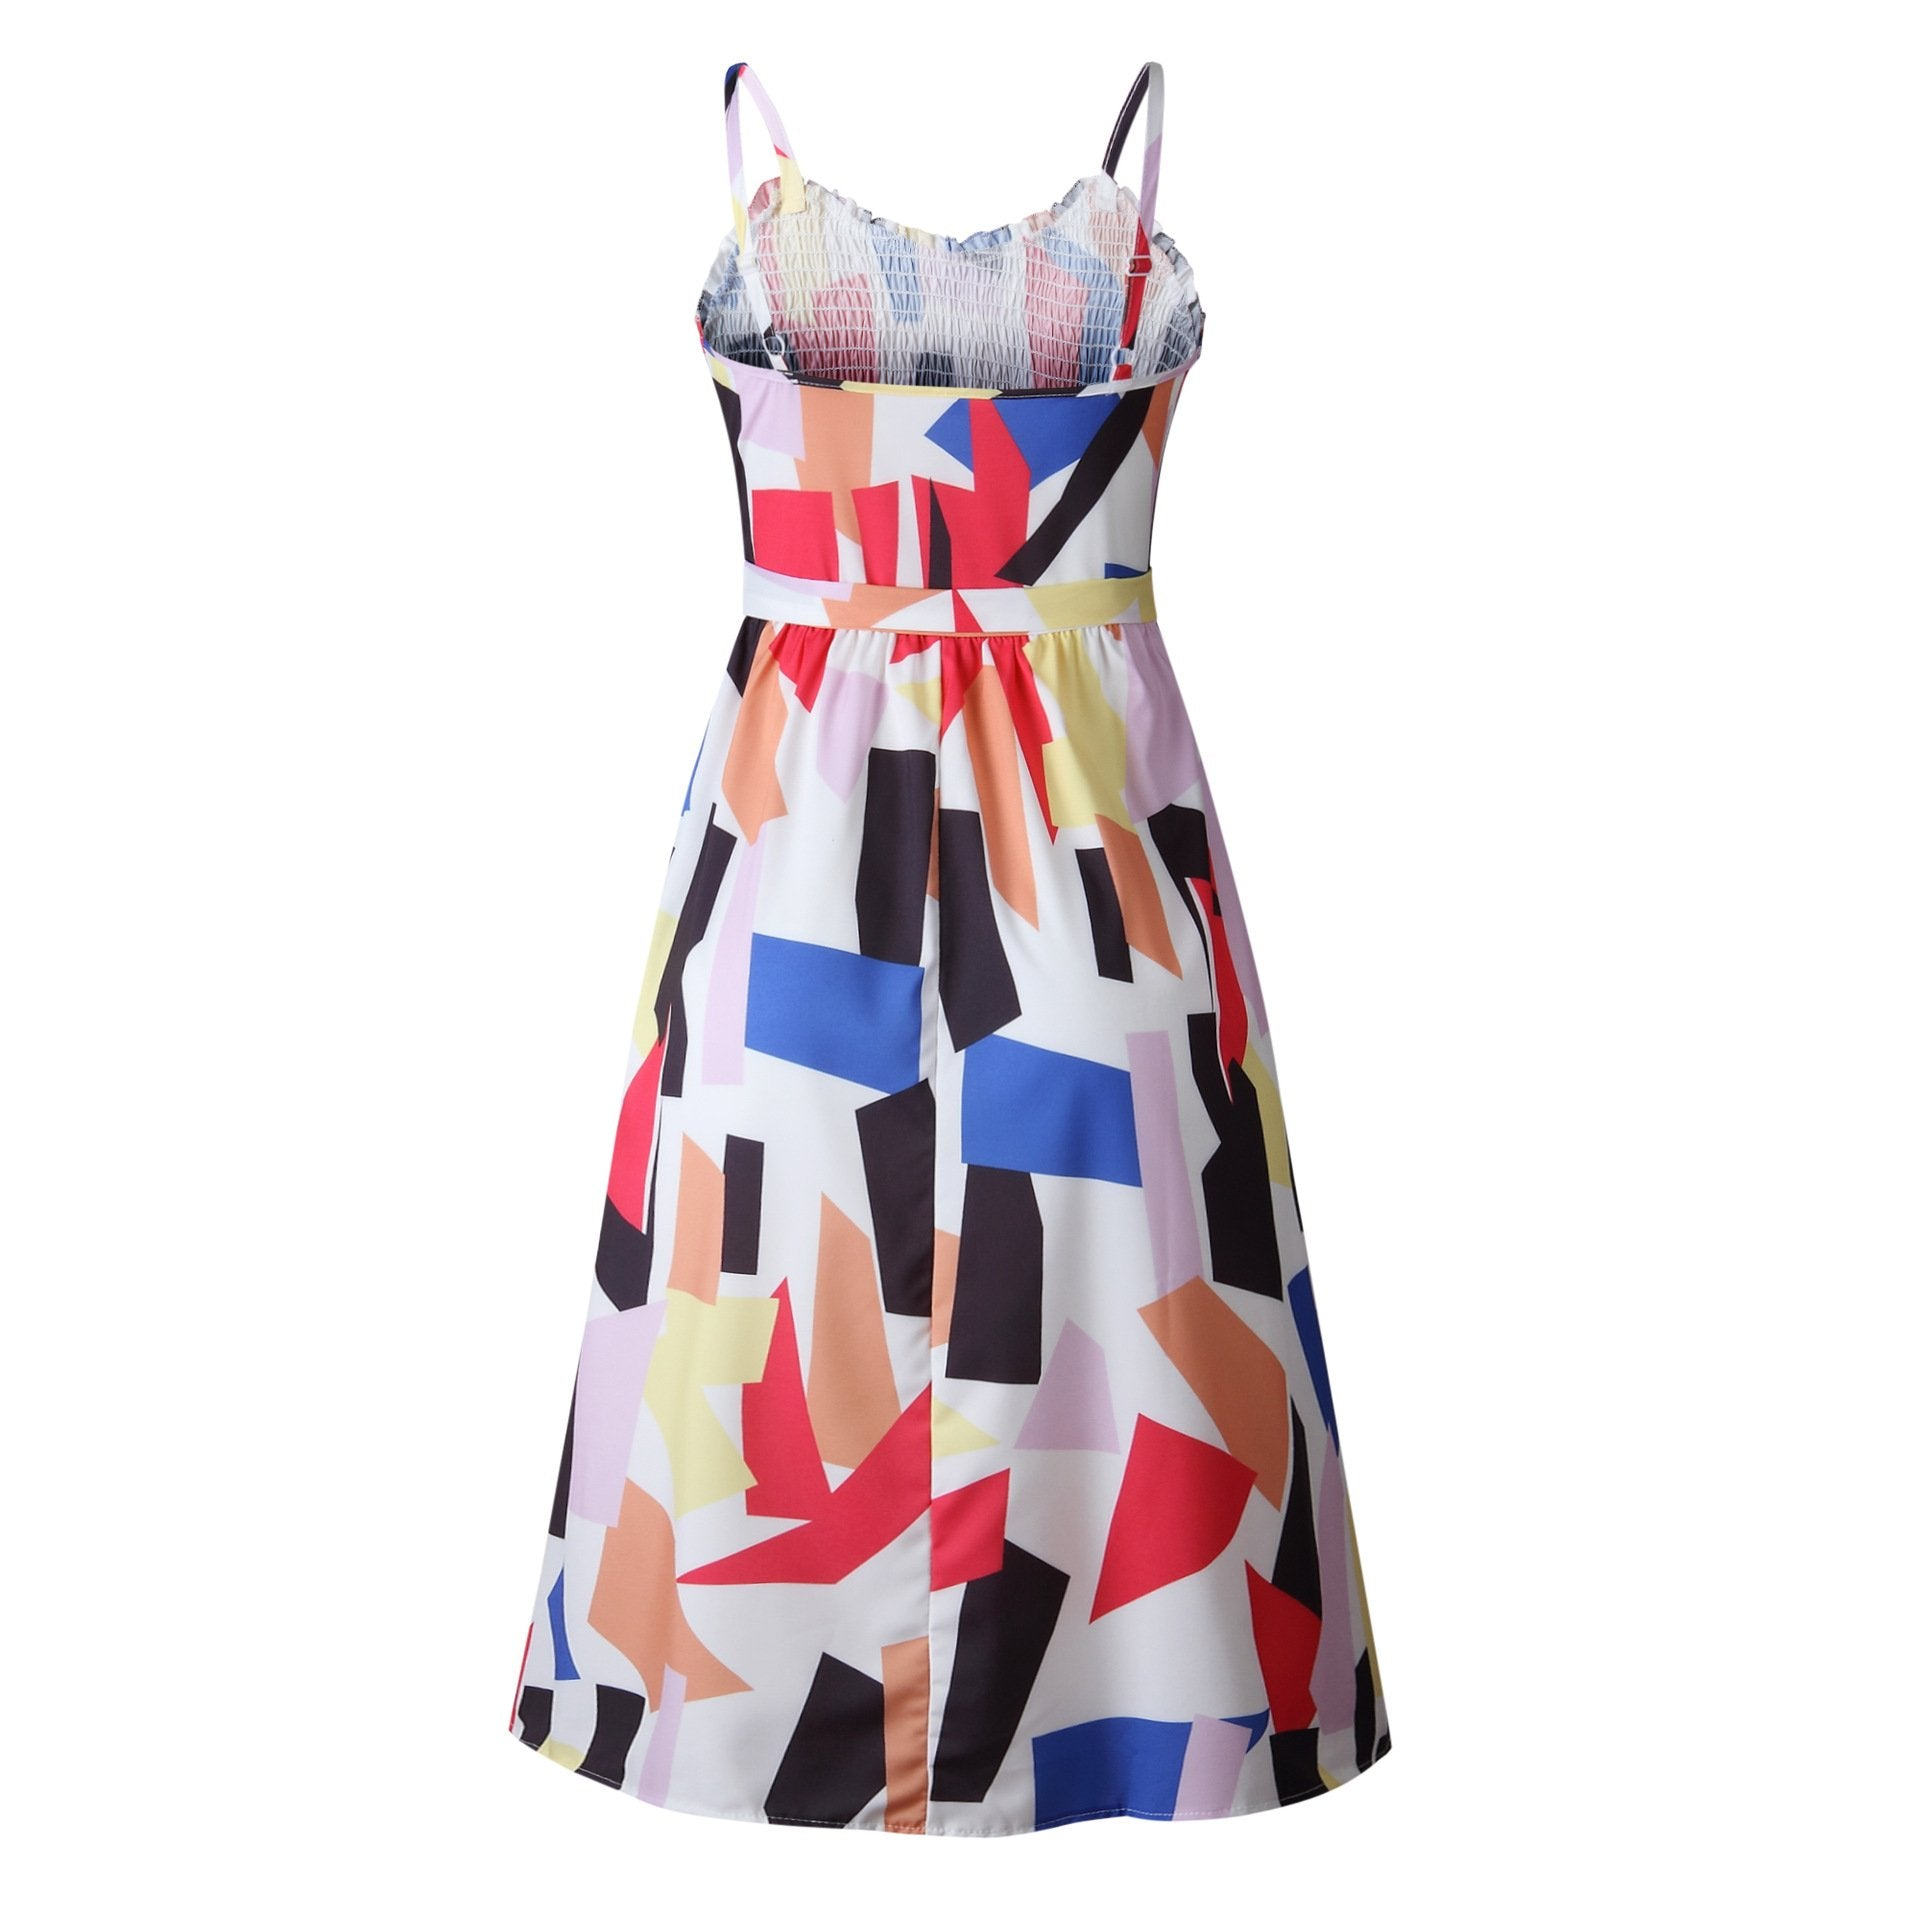 Women Summer Beach Dress Fashion Sling Square Collar Casual Sleeveless Printed Button Female Mid-Calf Dresses